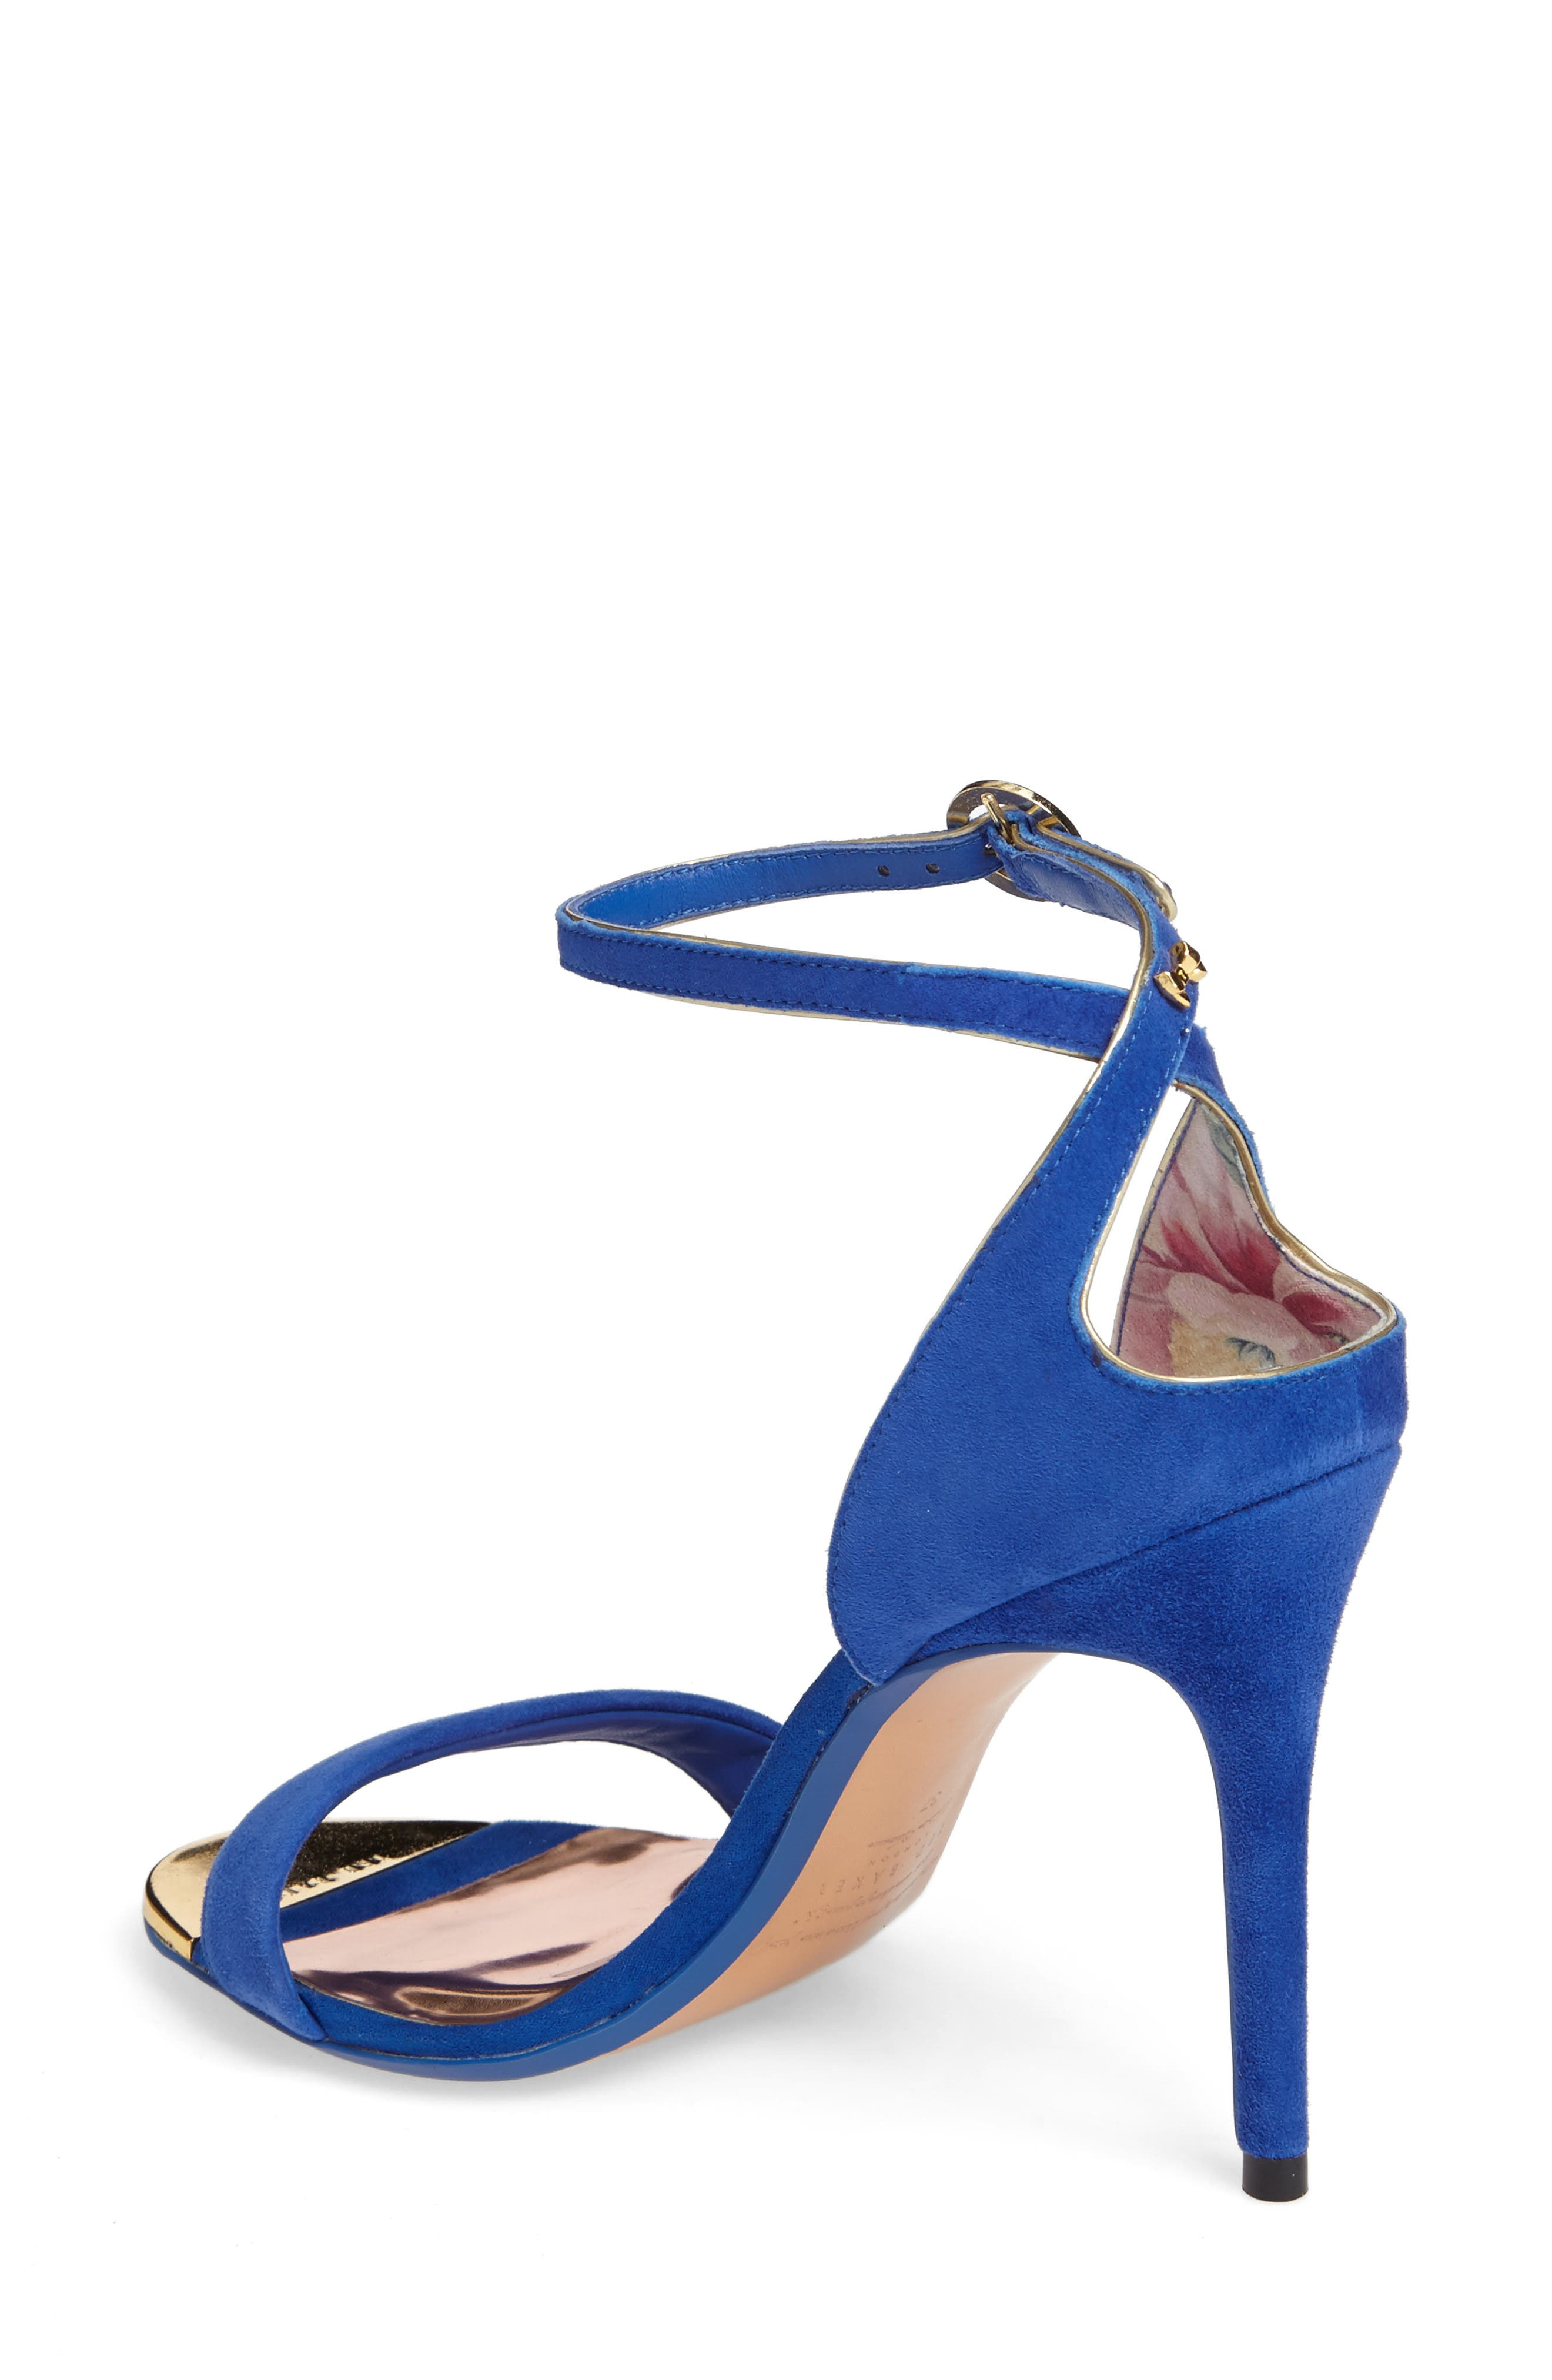 Mirobell Ankle Strap Sandal,                             Alternate thumbnail 2, color,                             Blue Suede